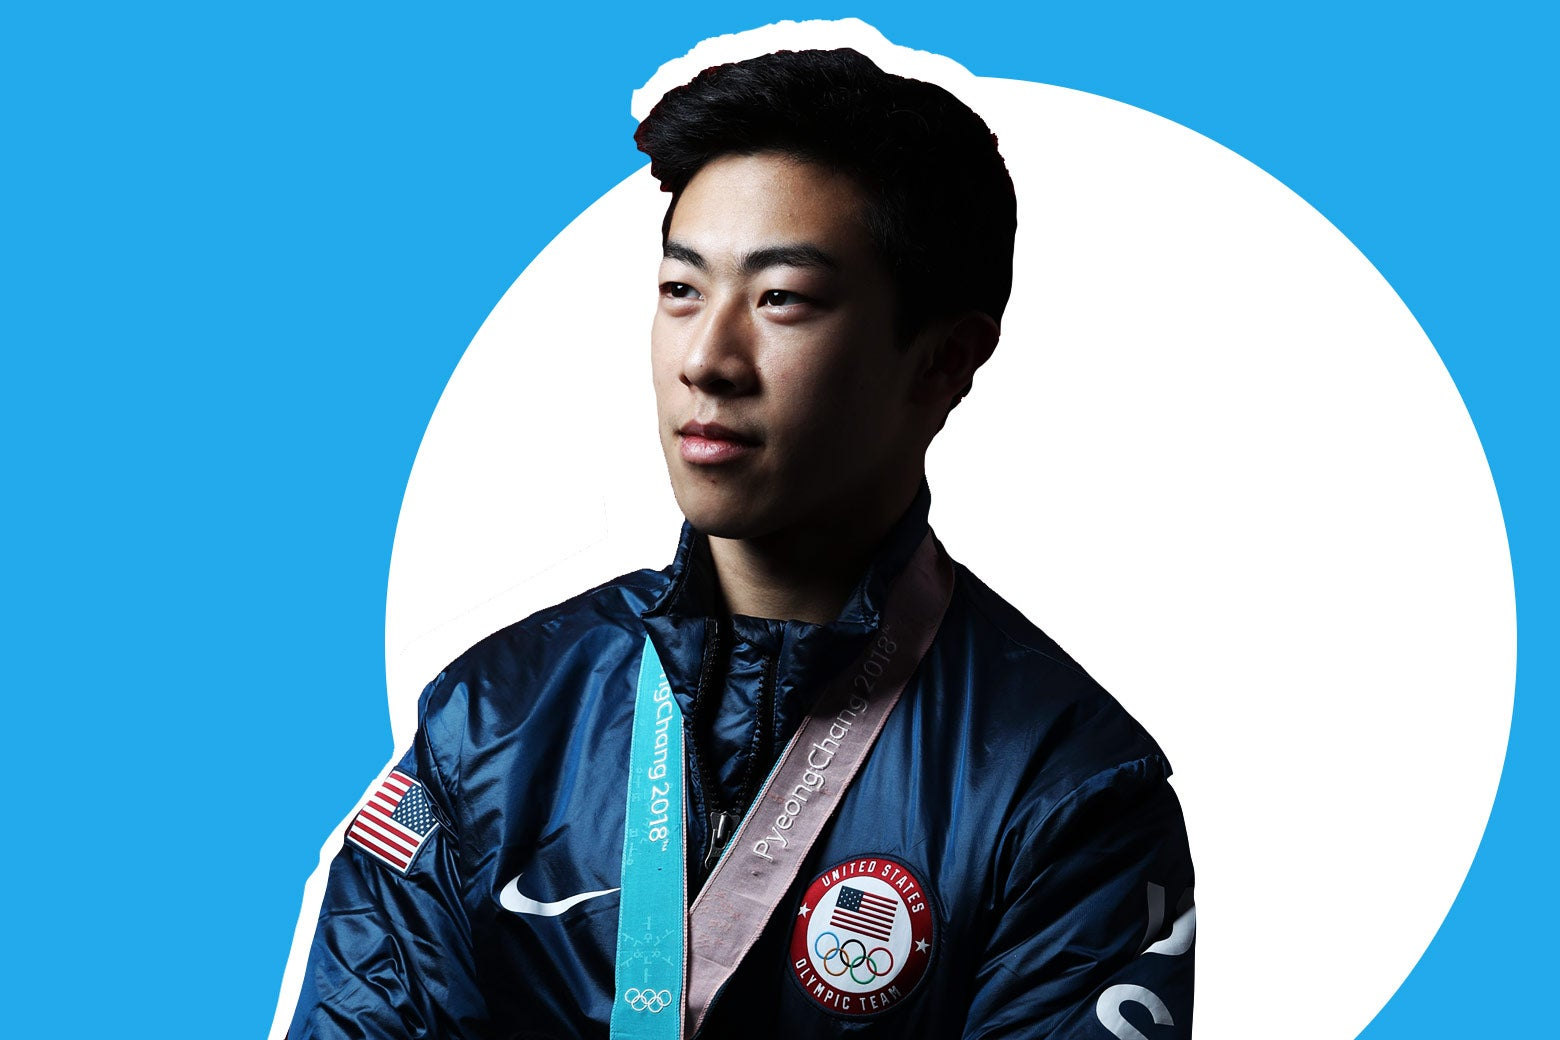 United States Men's Figure Skater Nathan Chen poses for a portrait with his bronze medal in the team event on the Today Show Set on February 17, 2018 in Gangneung, South Korea. (Photo by Marianna Massey/Getty Images)